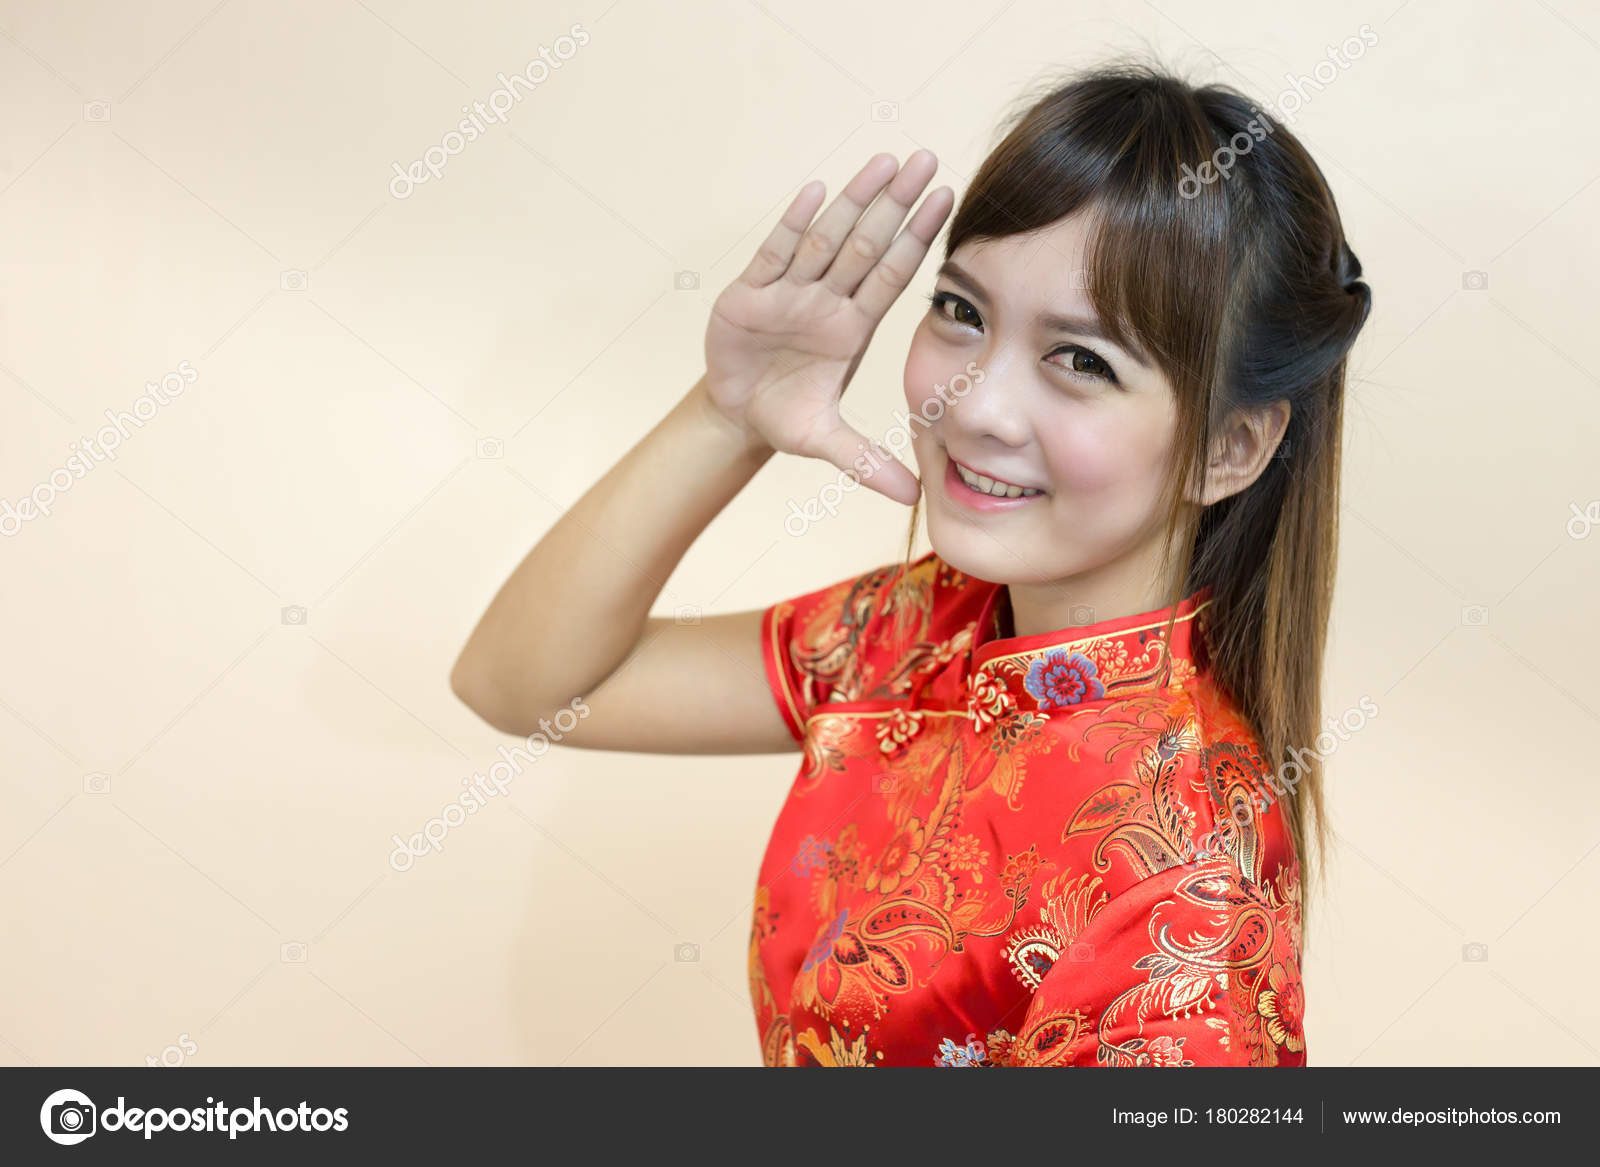 Asian woman greeting traditional chinese cheongsam hand lift welcome asian woman greeting in traditional chinese or cheongsam with hand lift welcome expression and lucky and enjoy in chinese new year celebration in red golden m4hsunfo